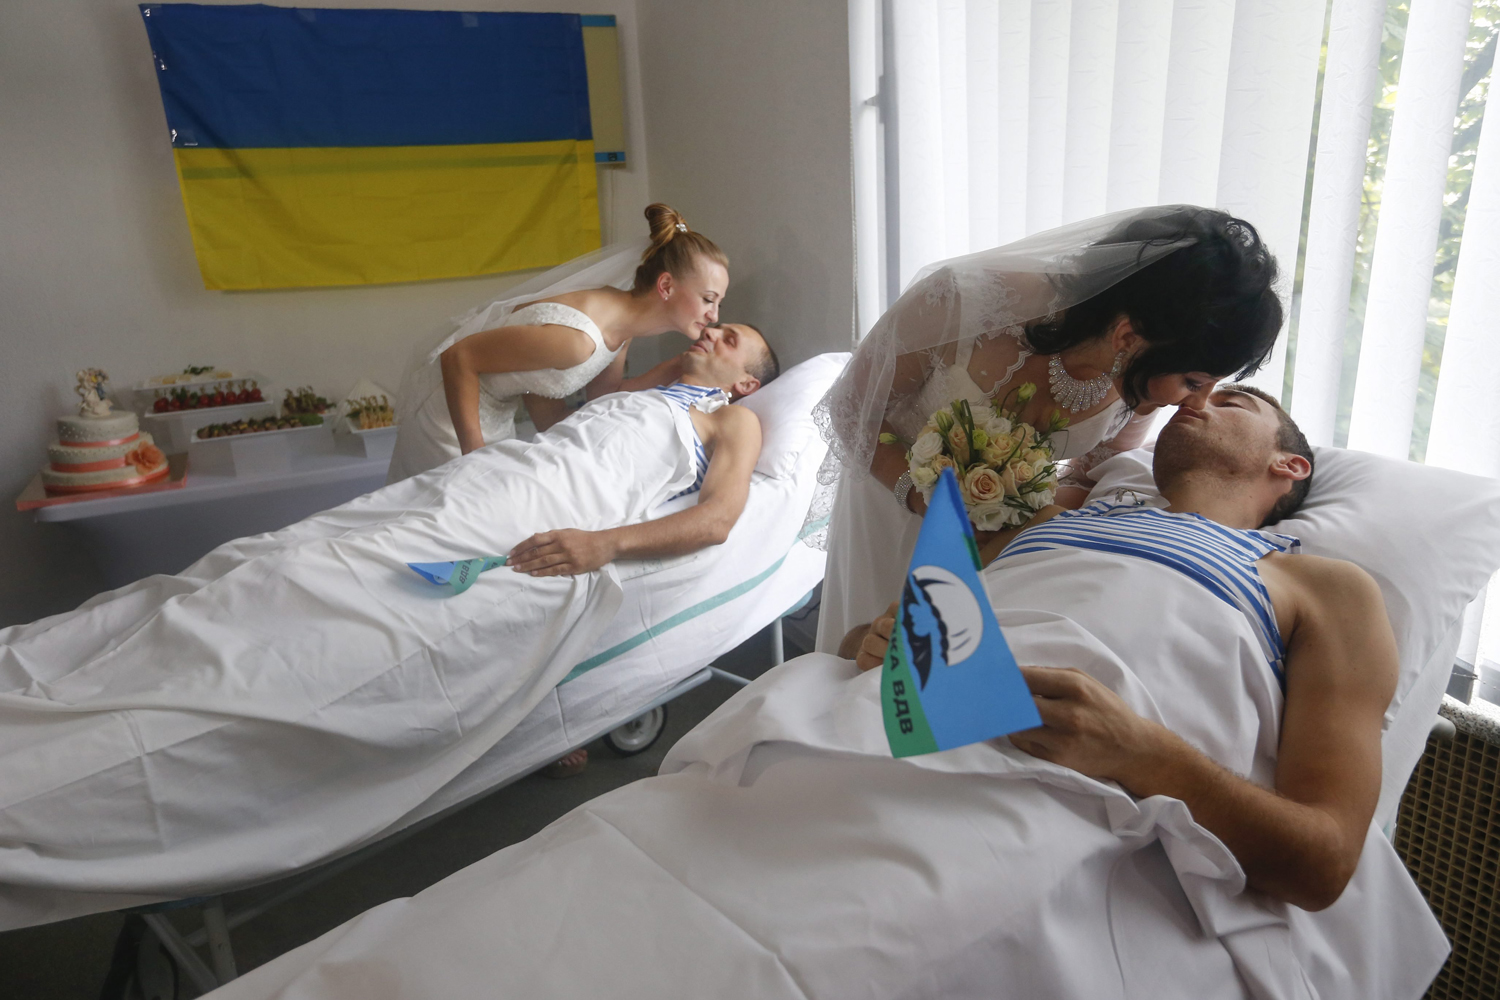 Jul. 9, 2014. Wounded members of the Ukrainian forces, paratroopers Ruslan Yarish (R) and Oleksandr Ponomaryov (L) kiss their brides during their wedding in the central military hospital in Kiev, Ukraine.